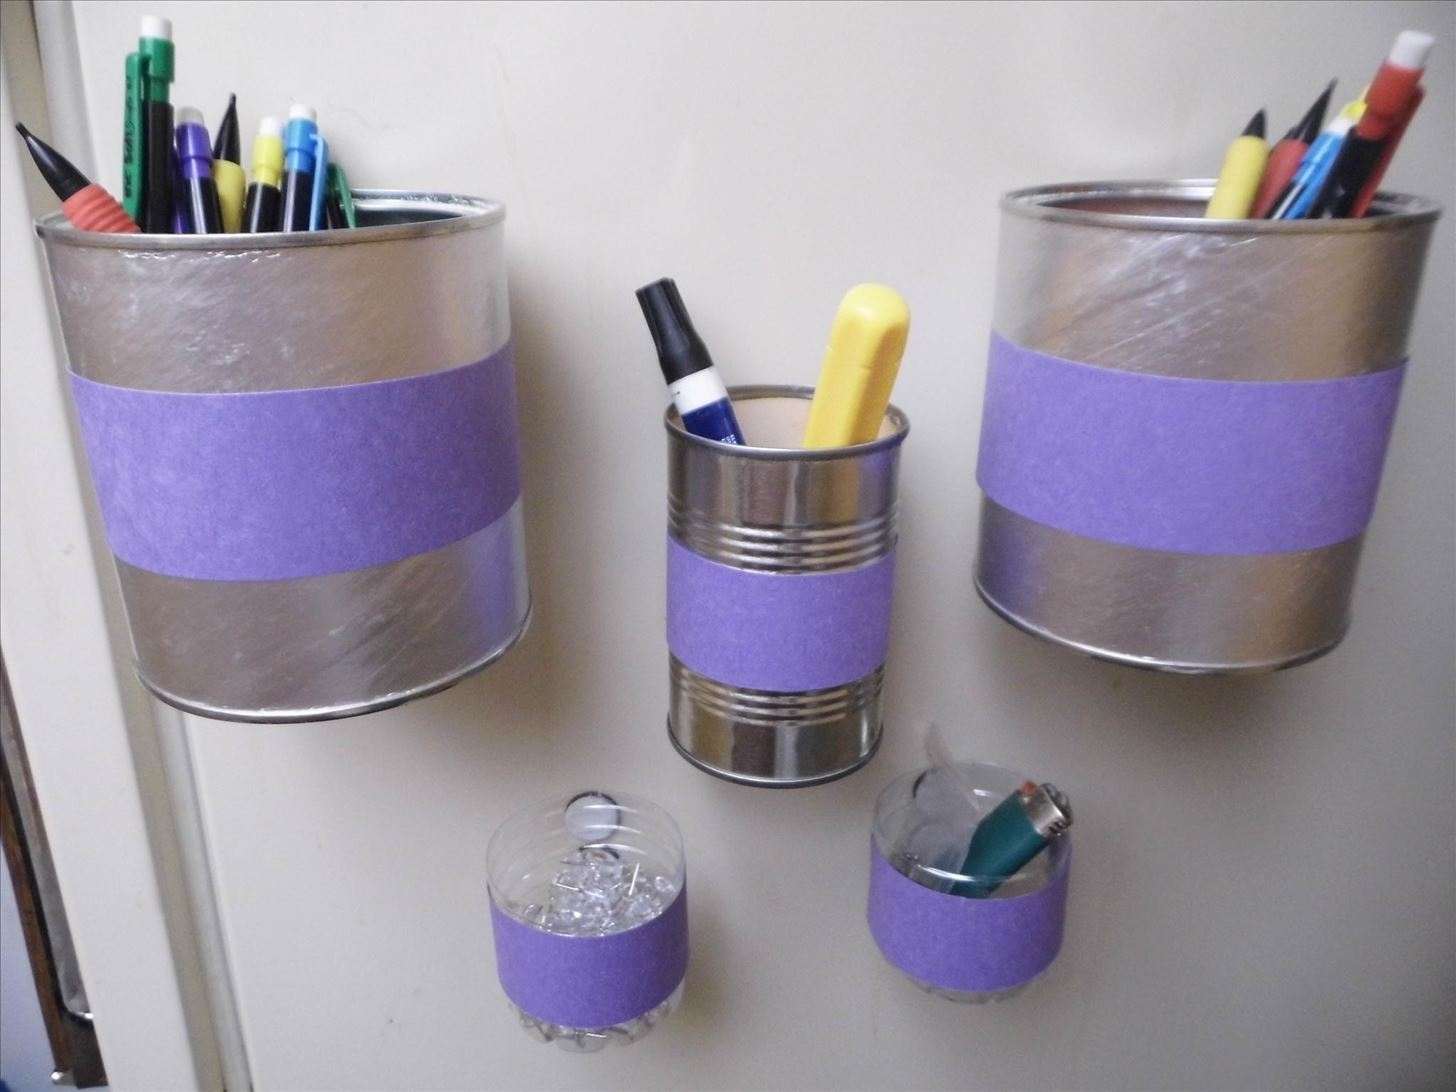 Organize Your Odds and Ends with These Easy DIY Magnetic Bins